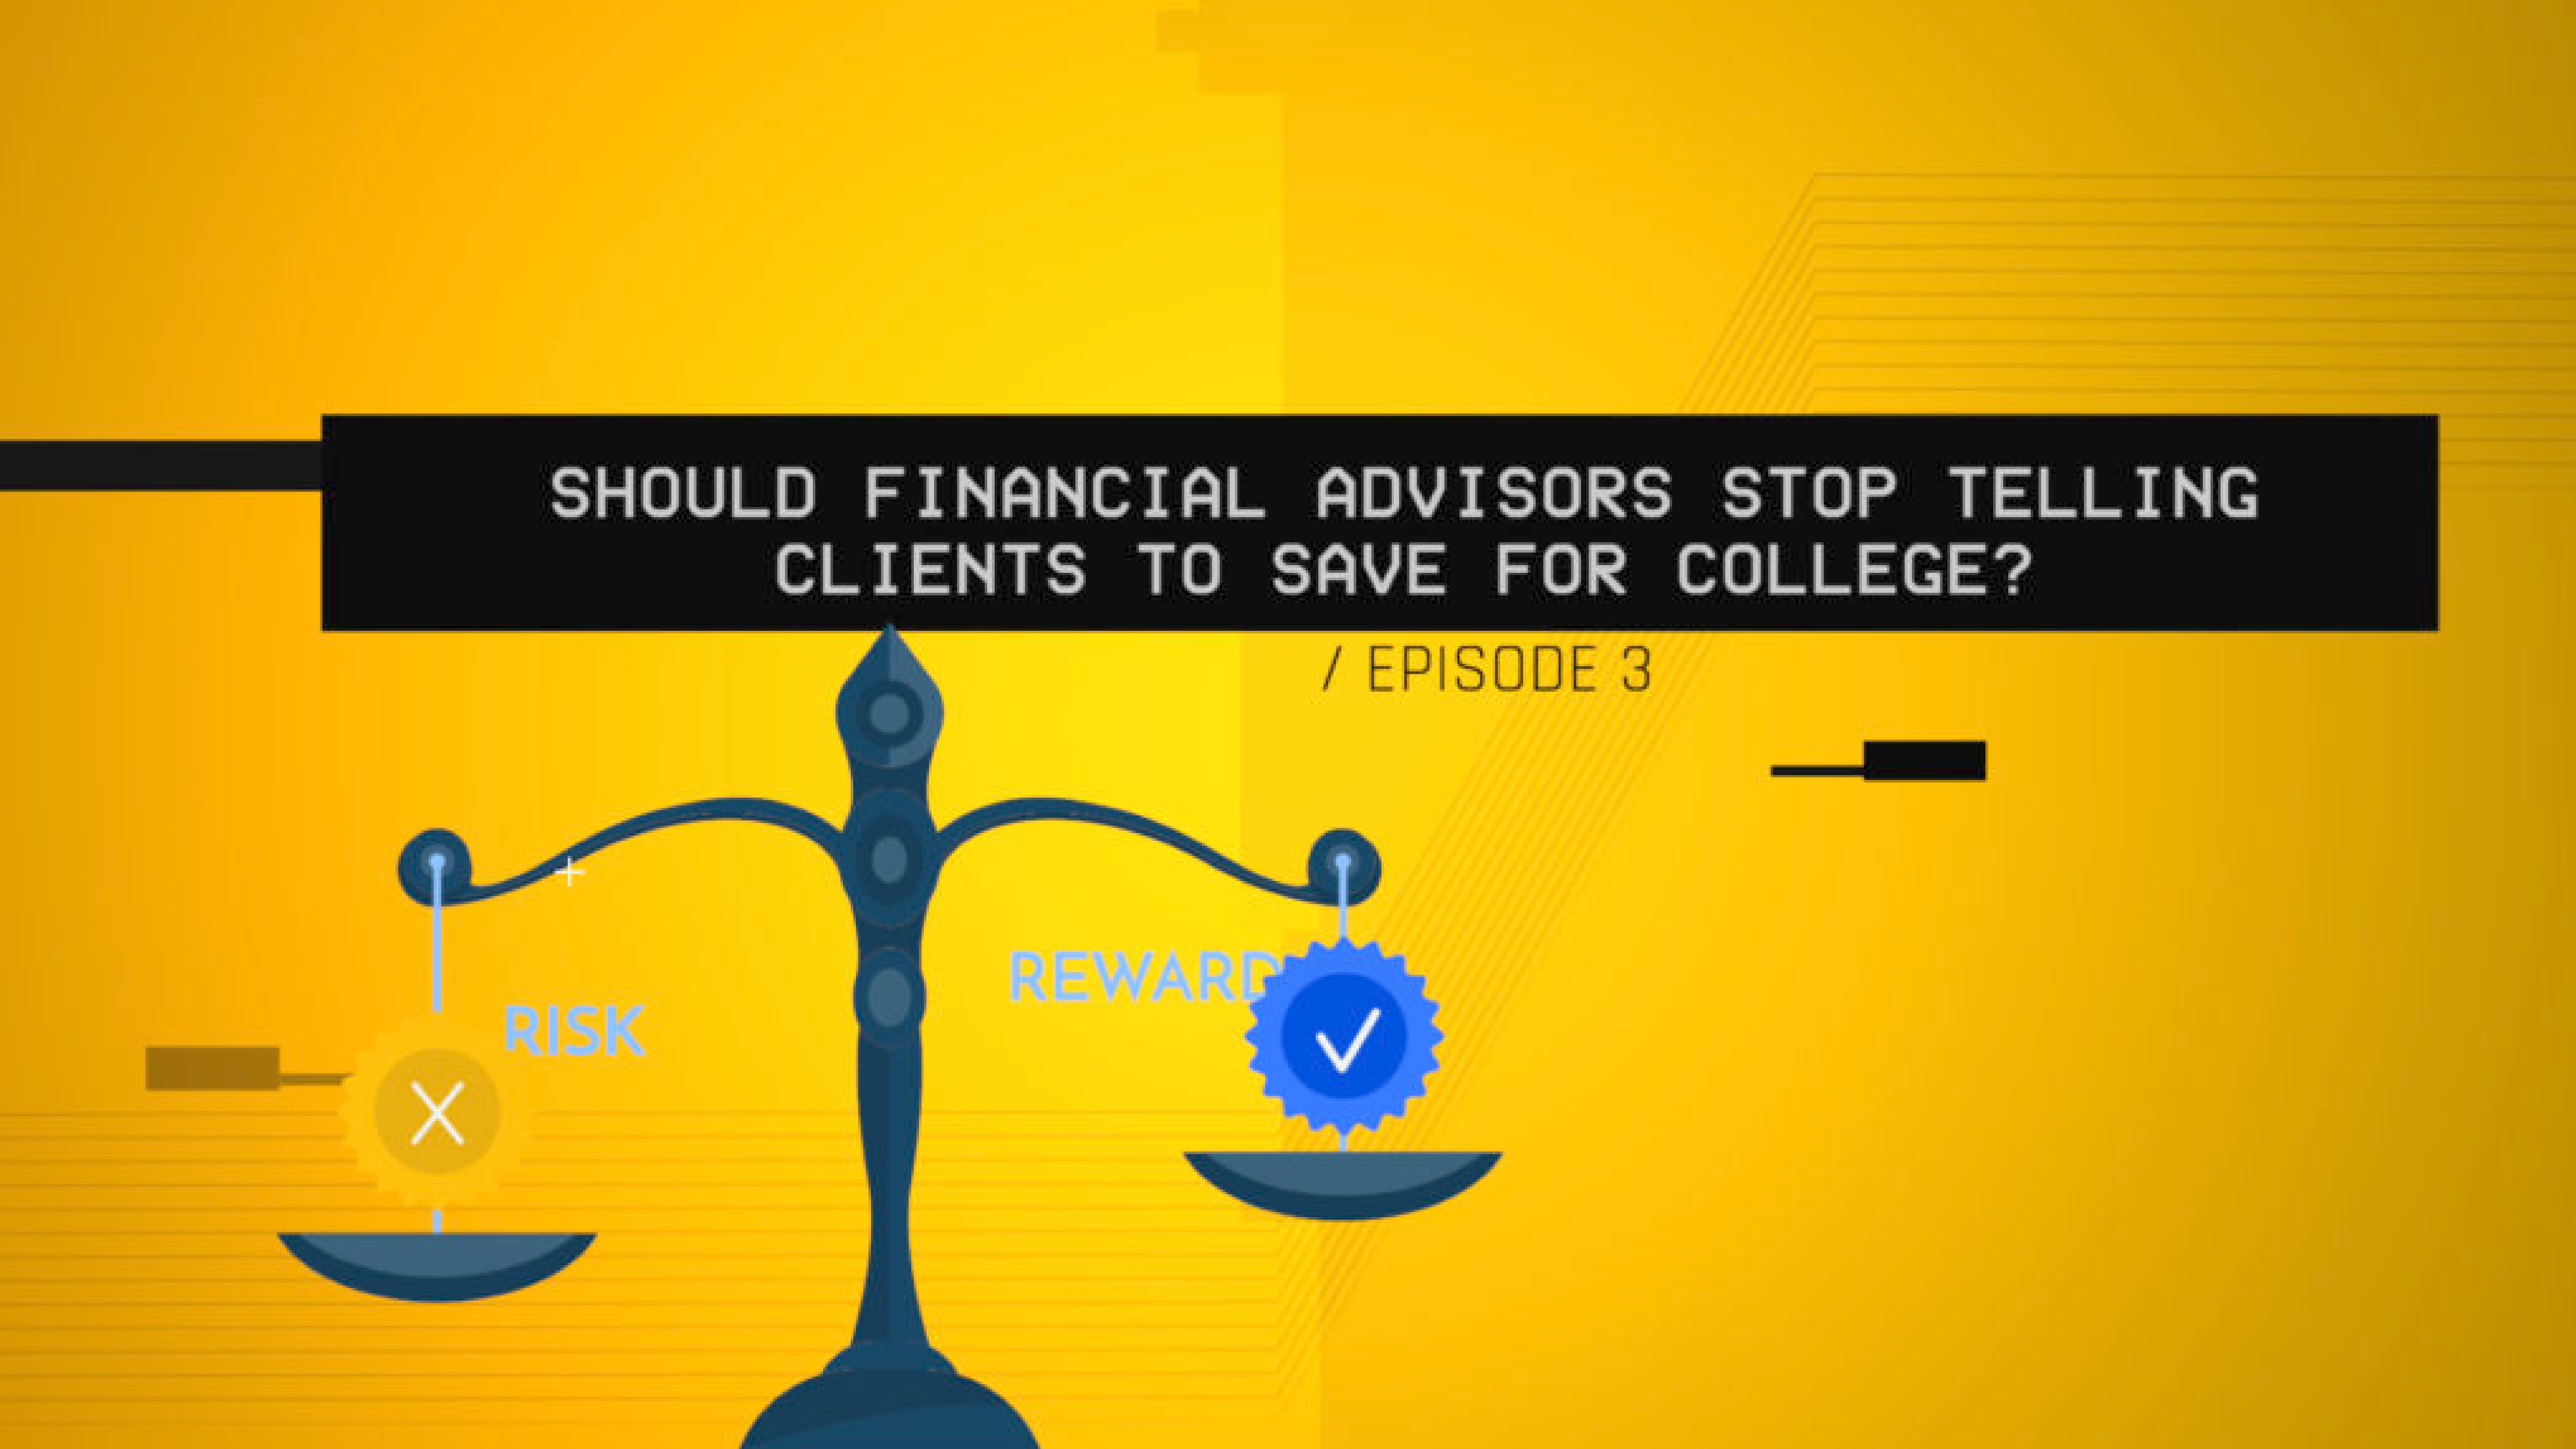 Should Financial Advisors Stop Telling Clients to Save for College? (S1 E3)